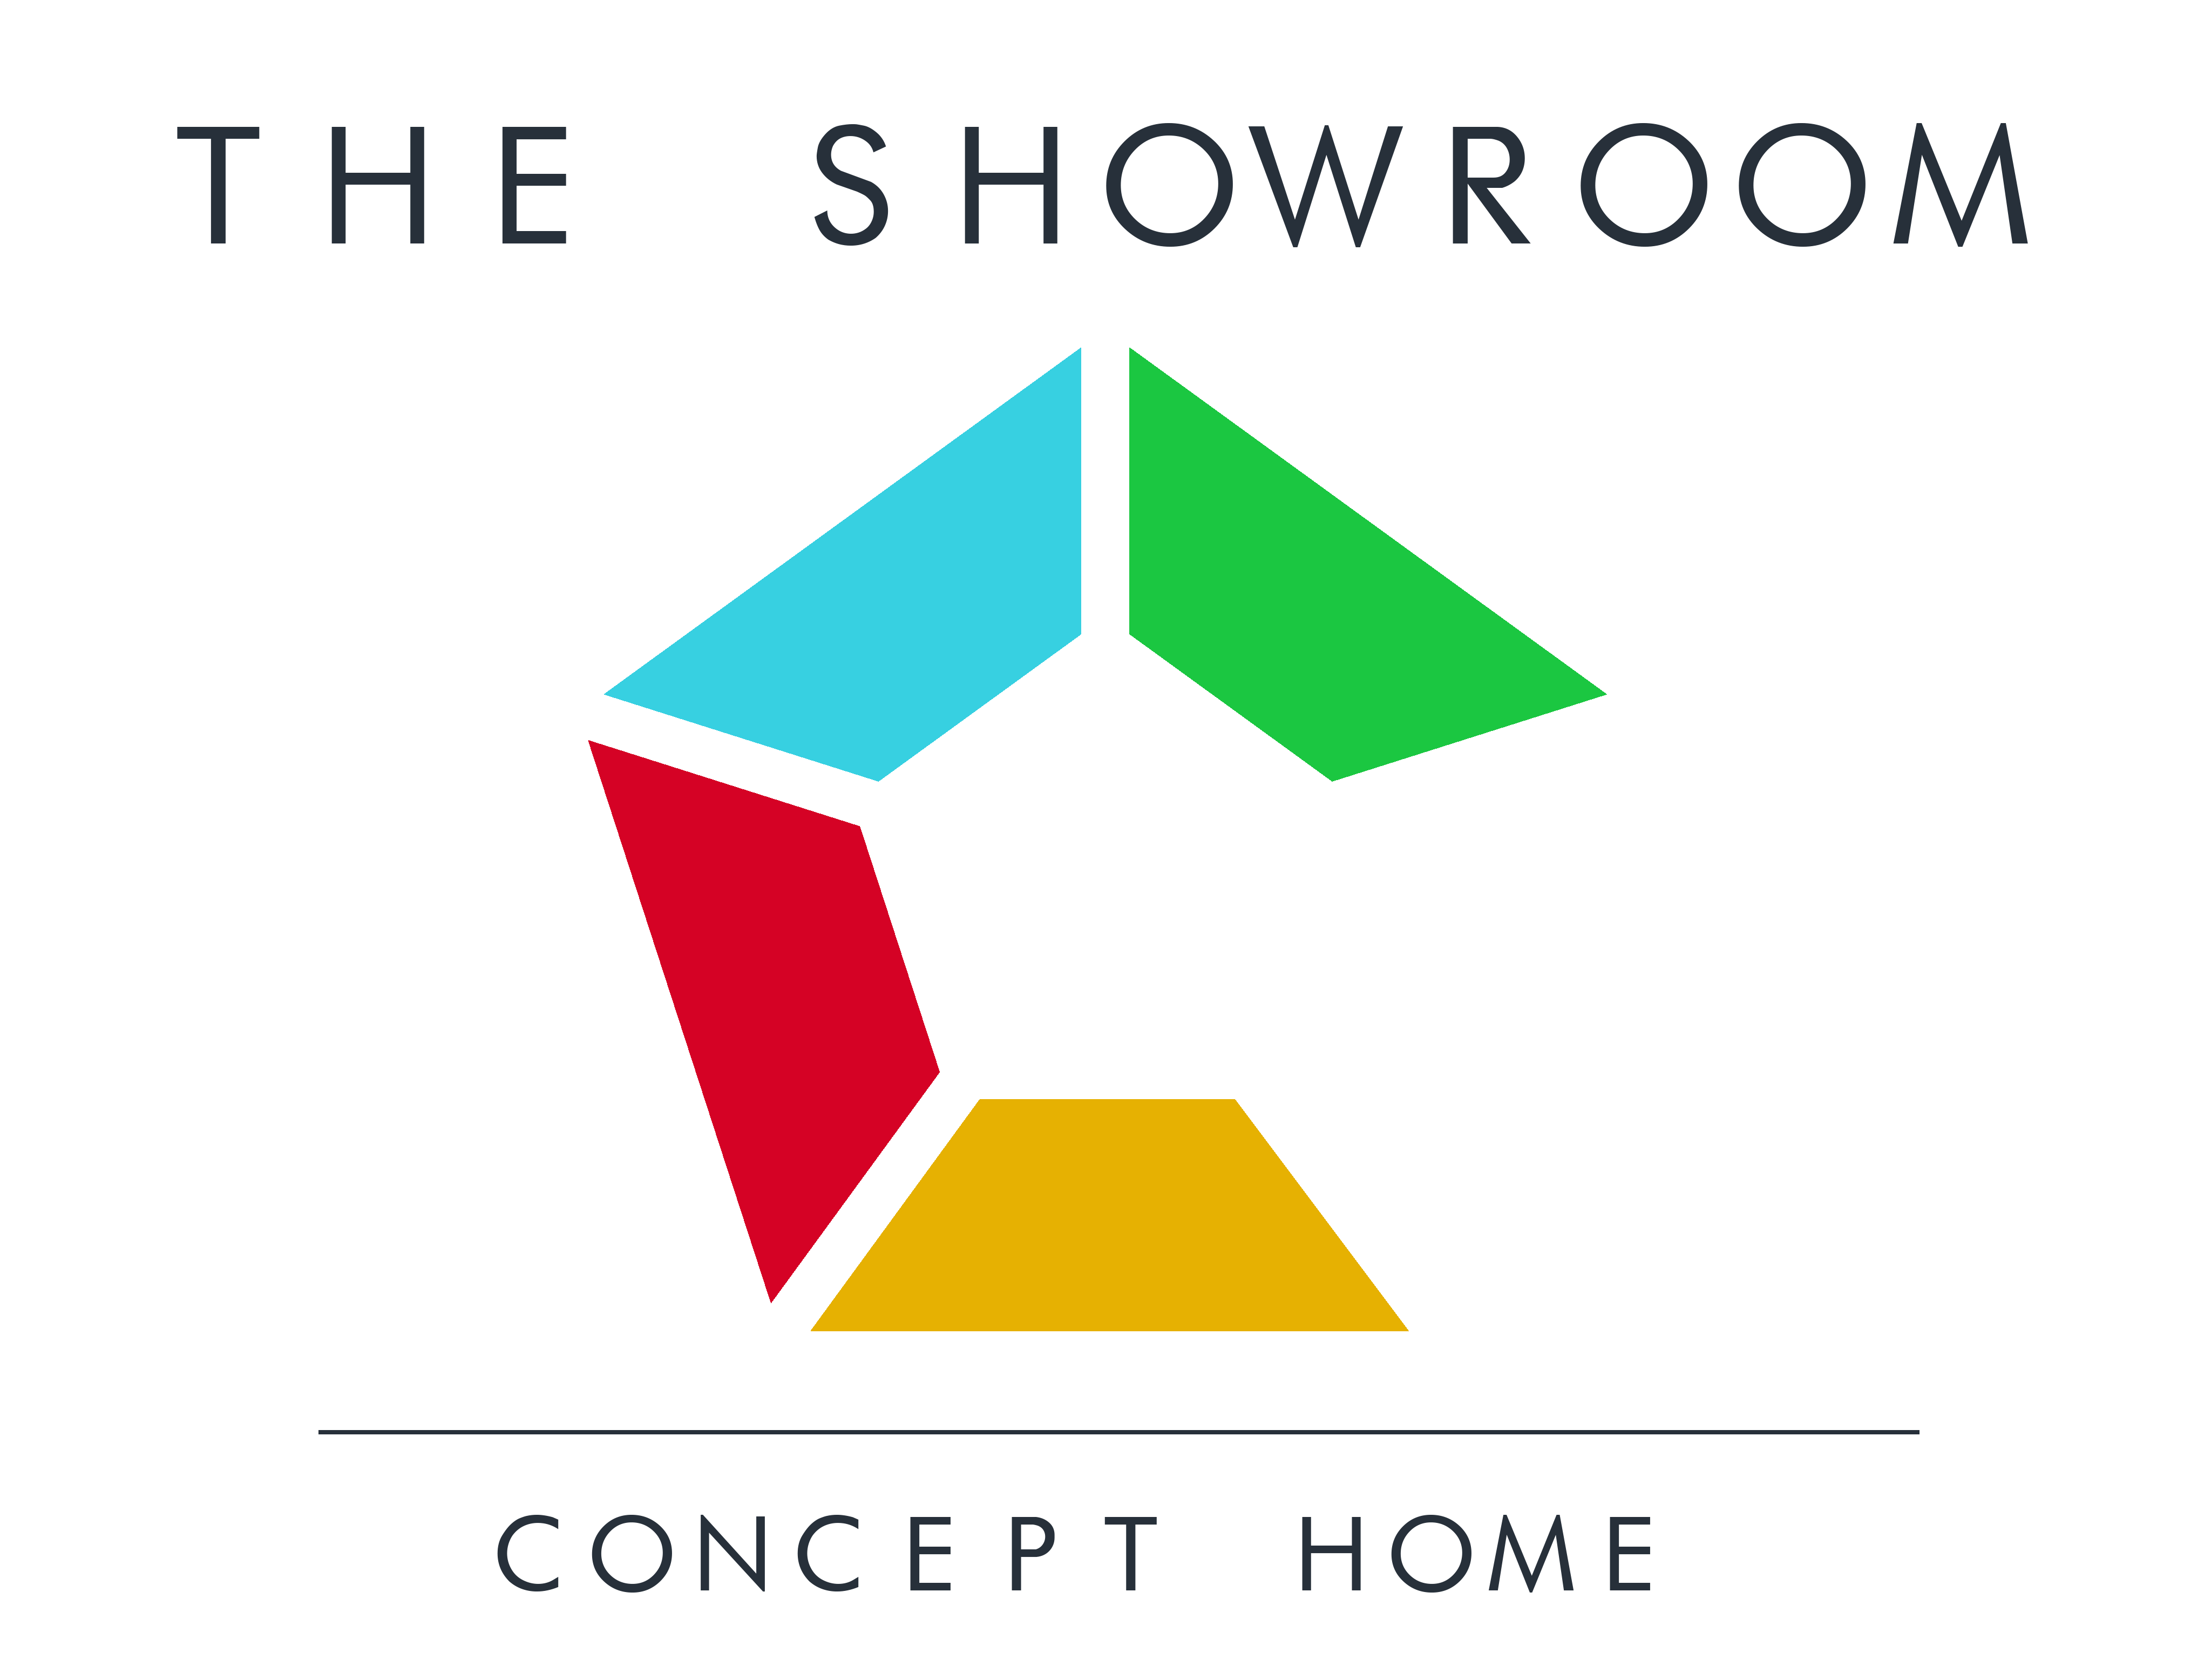 The Showroom - Concept Home